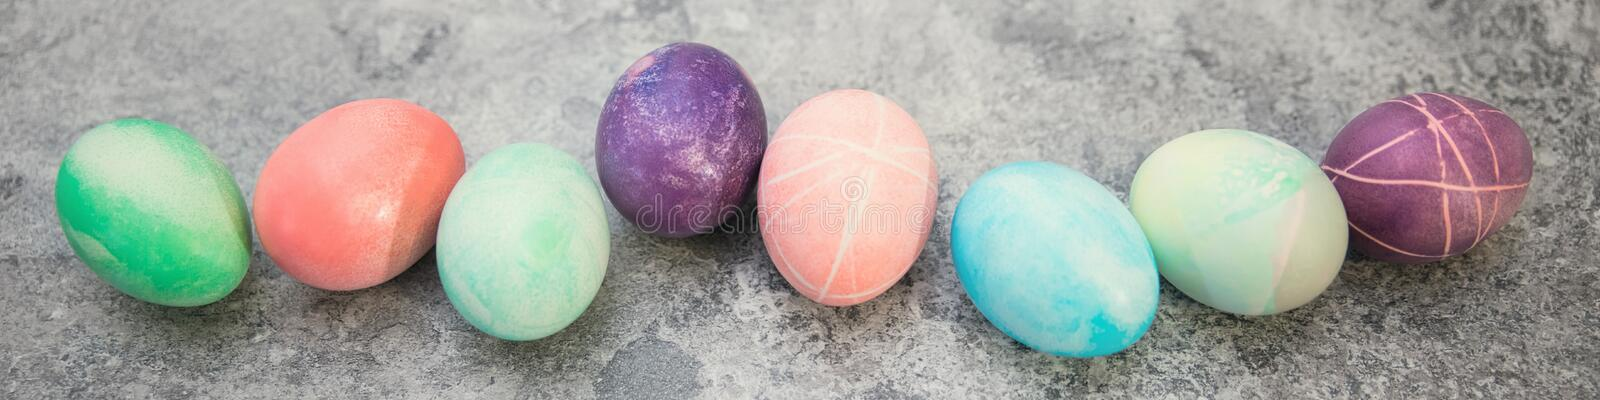 Colorful dyed easter eggs in a line on grey background, panorama royalty free stock image